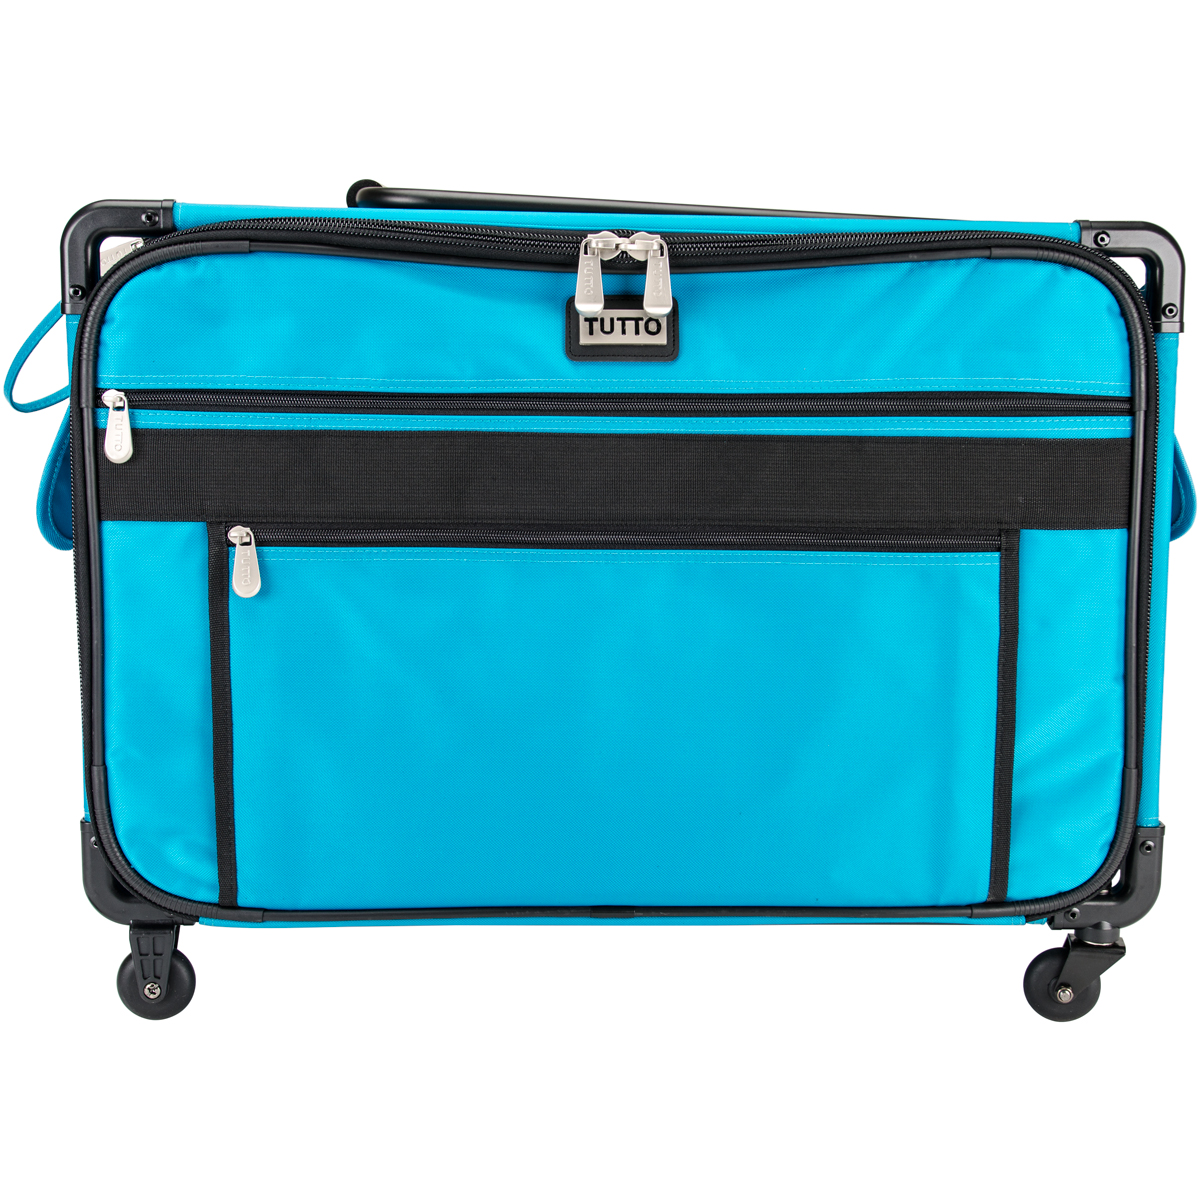 TUTTO Machine On Wheels Case, Turquoise